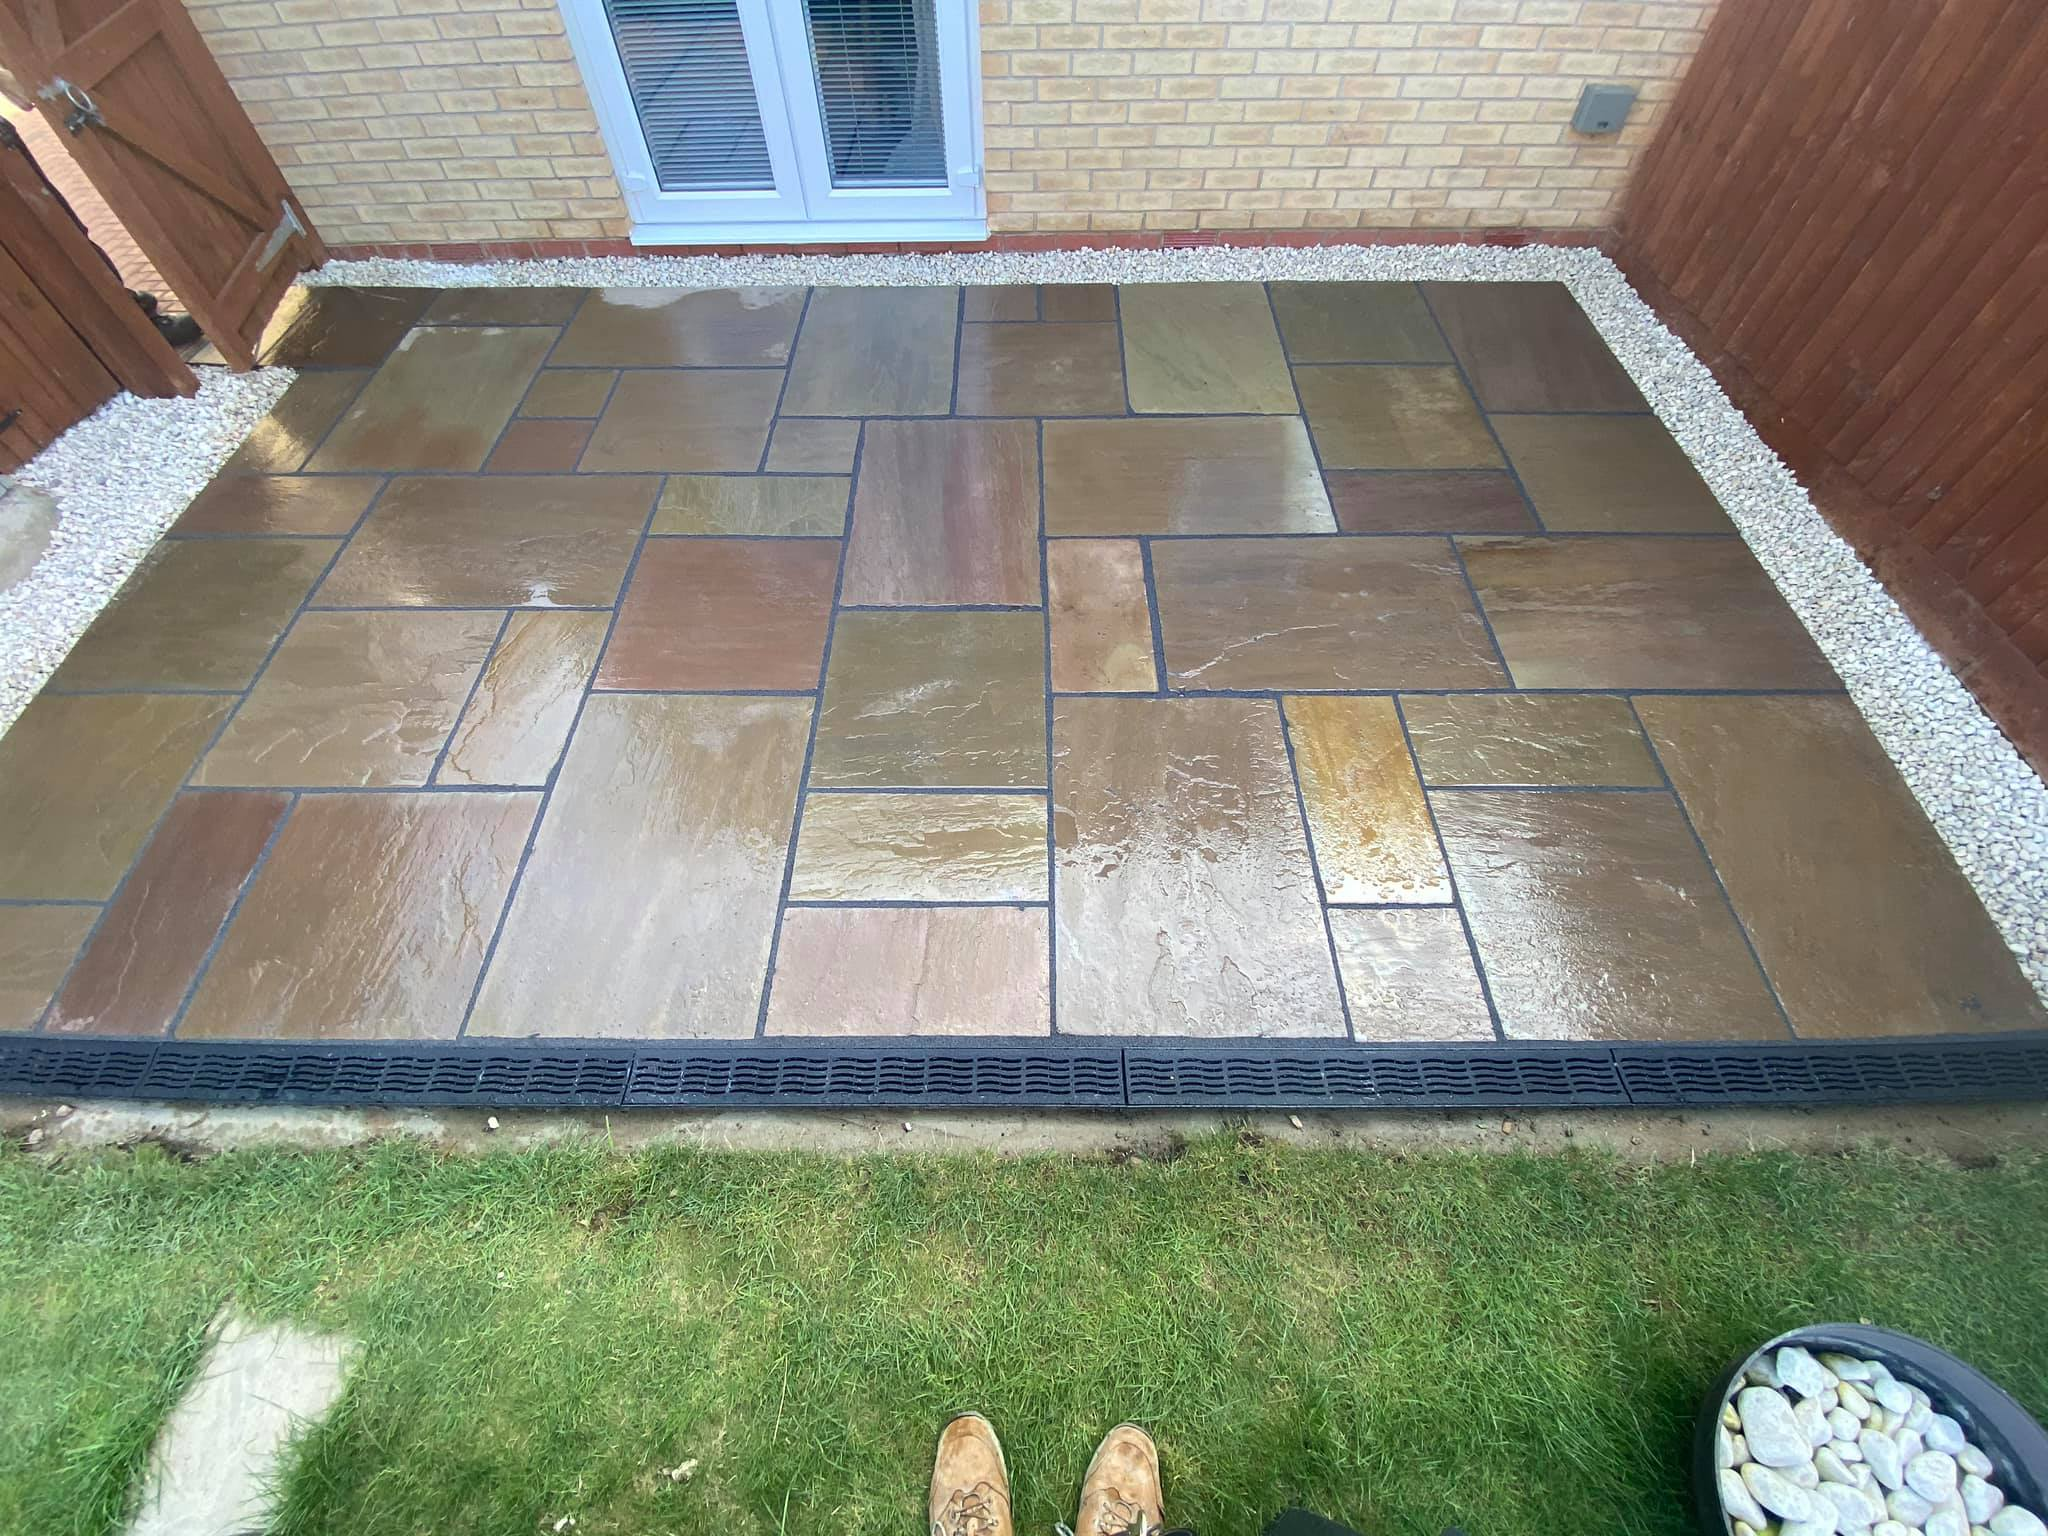 New Patio – Fixed drainage issues